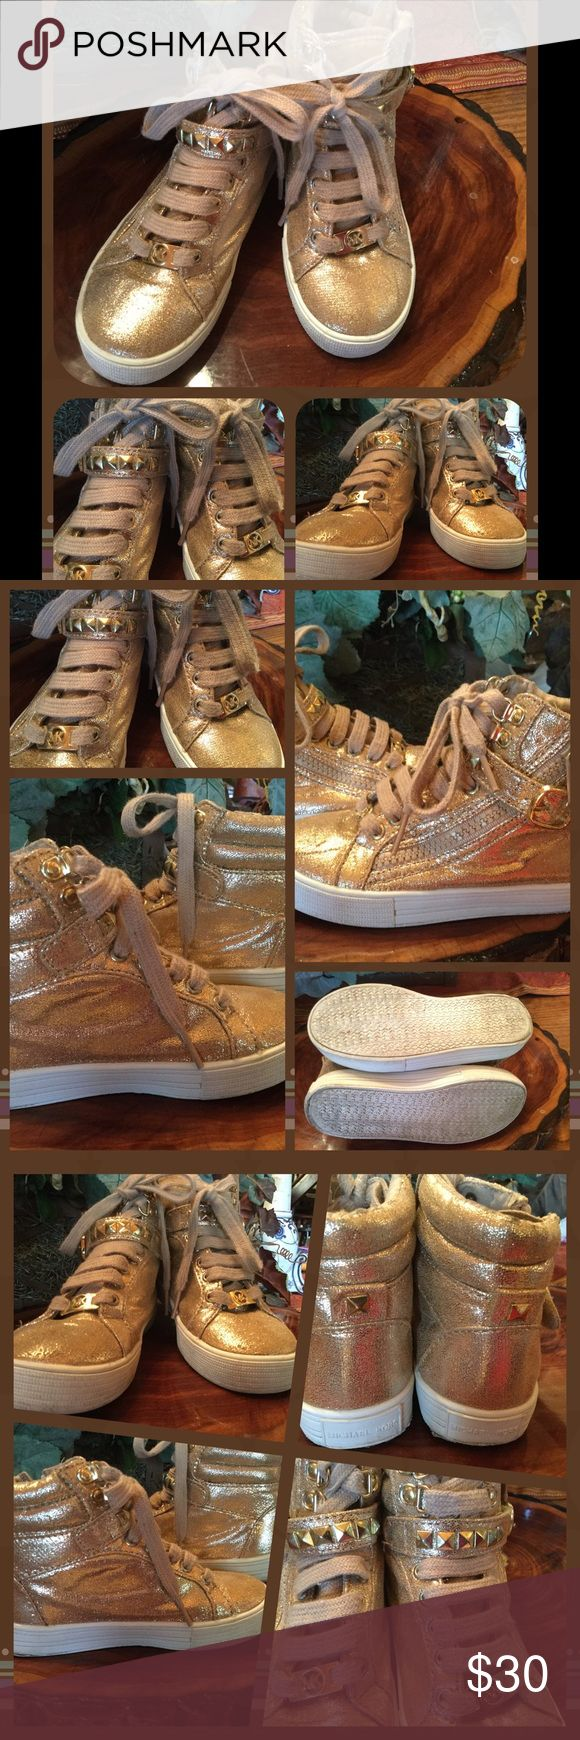 """Michael Kors Bronze Girls High Top Sneakers SZ 10 I heal Kors metallic bronze/ gold, """"girls""""very gently used, size 10, high top sneakers/ tennis shoes in size 10. From smoke free home with pets. Michael Kors Shoes Sneakers"""